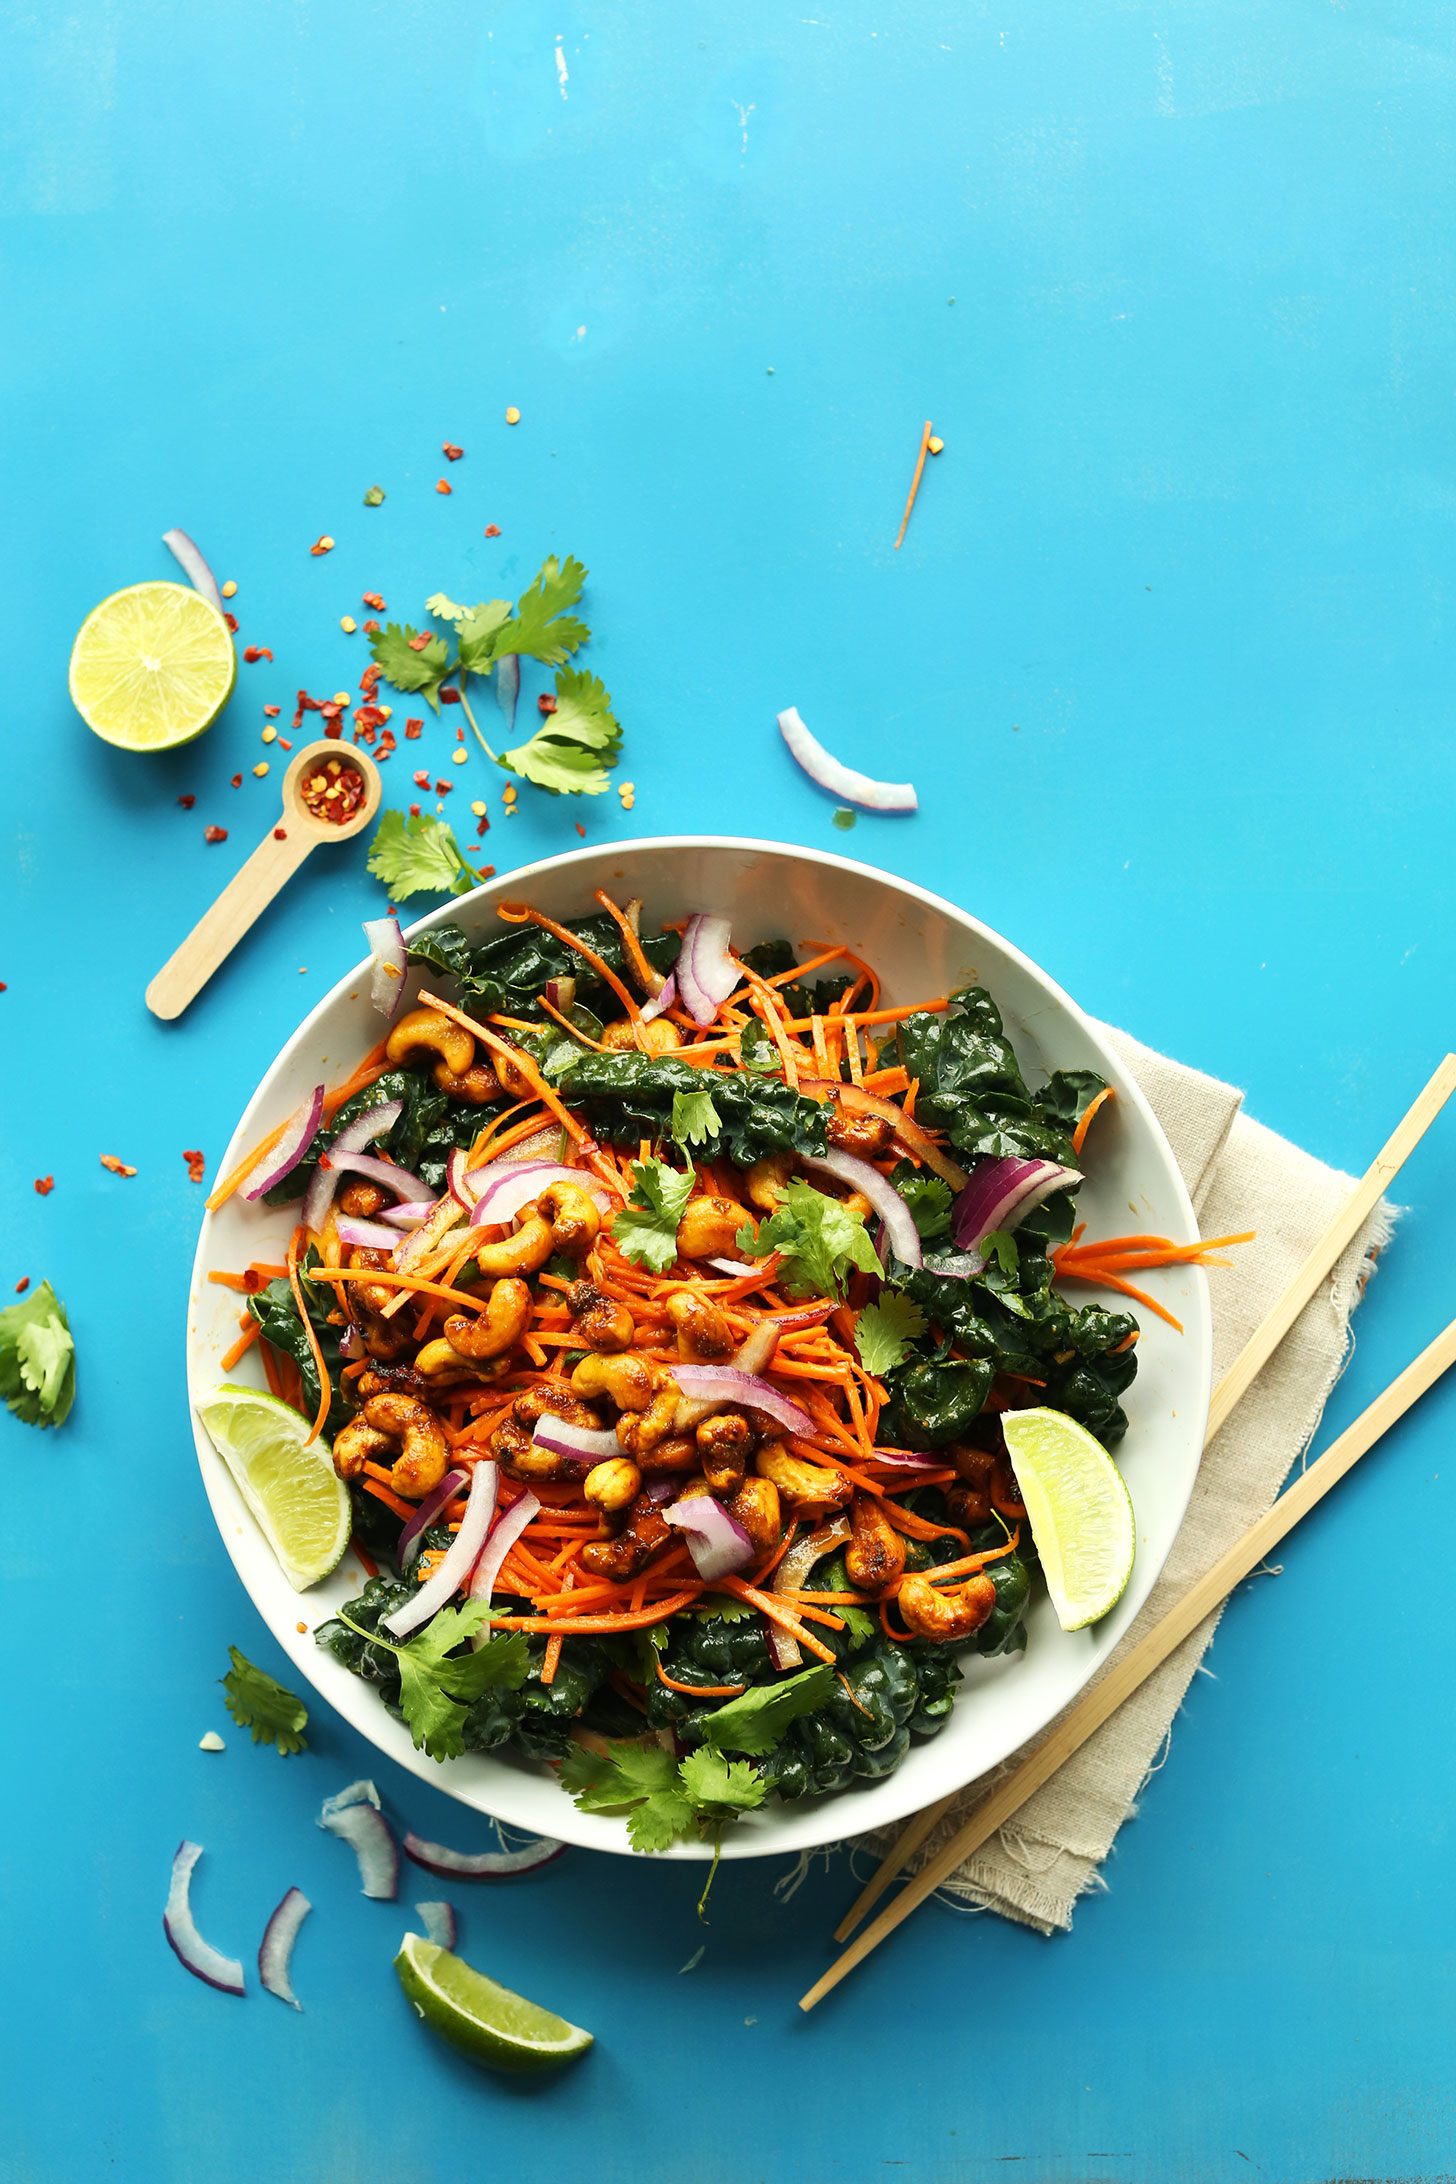 A big bowl of our flavorful Thai Carrot Salad with Curried Cashews for a sweet and crunchy vegan meal